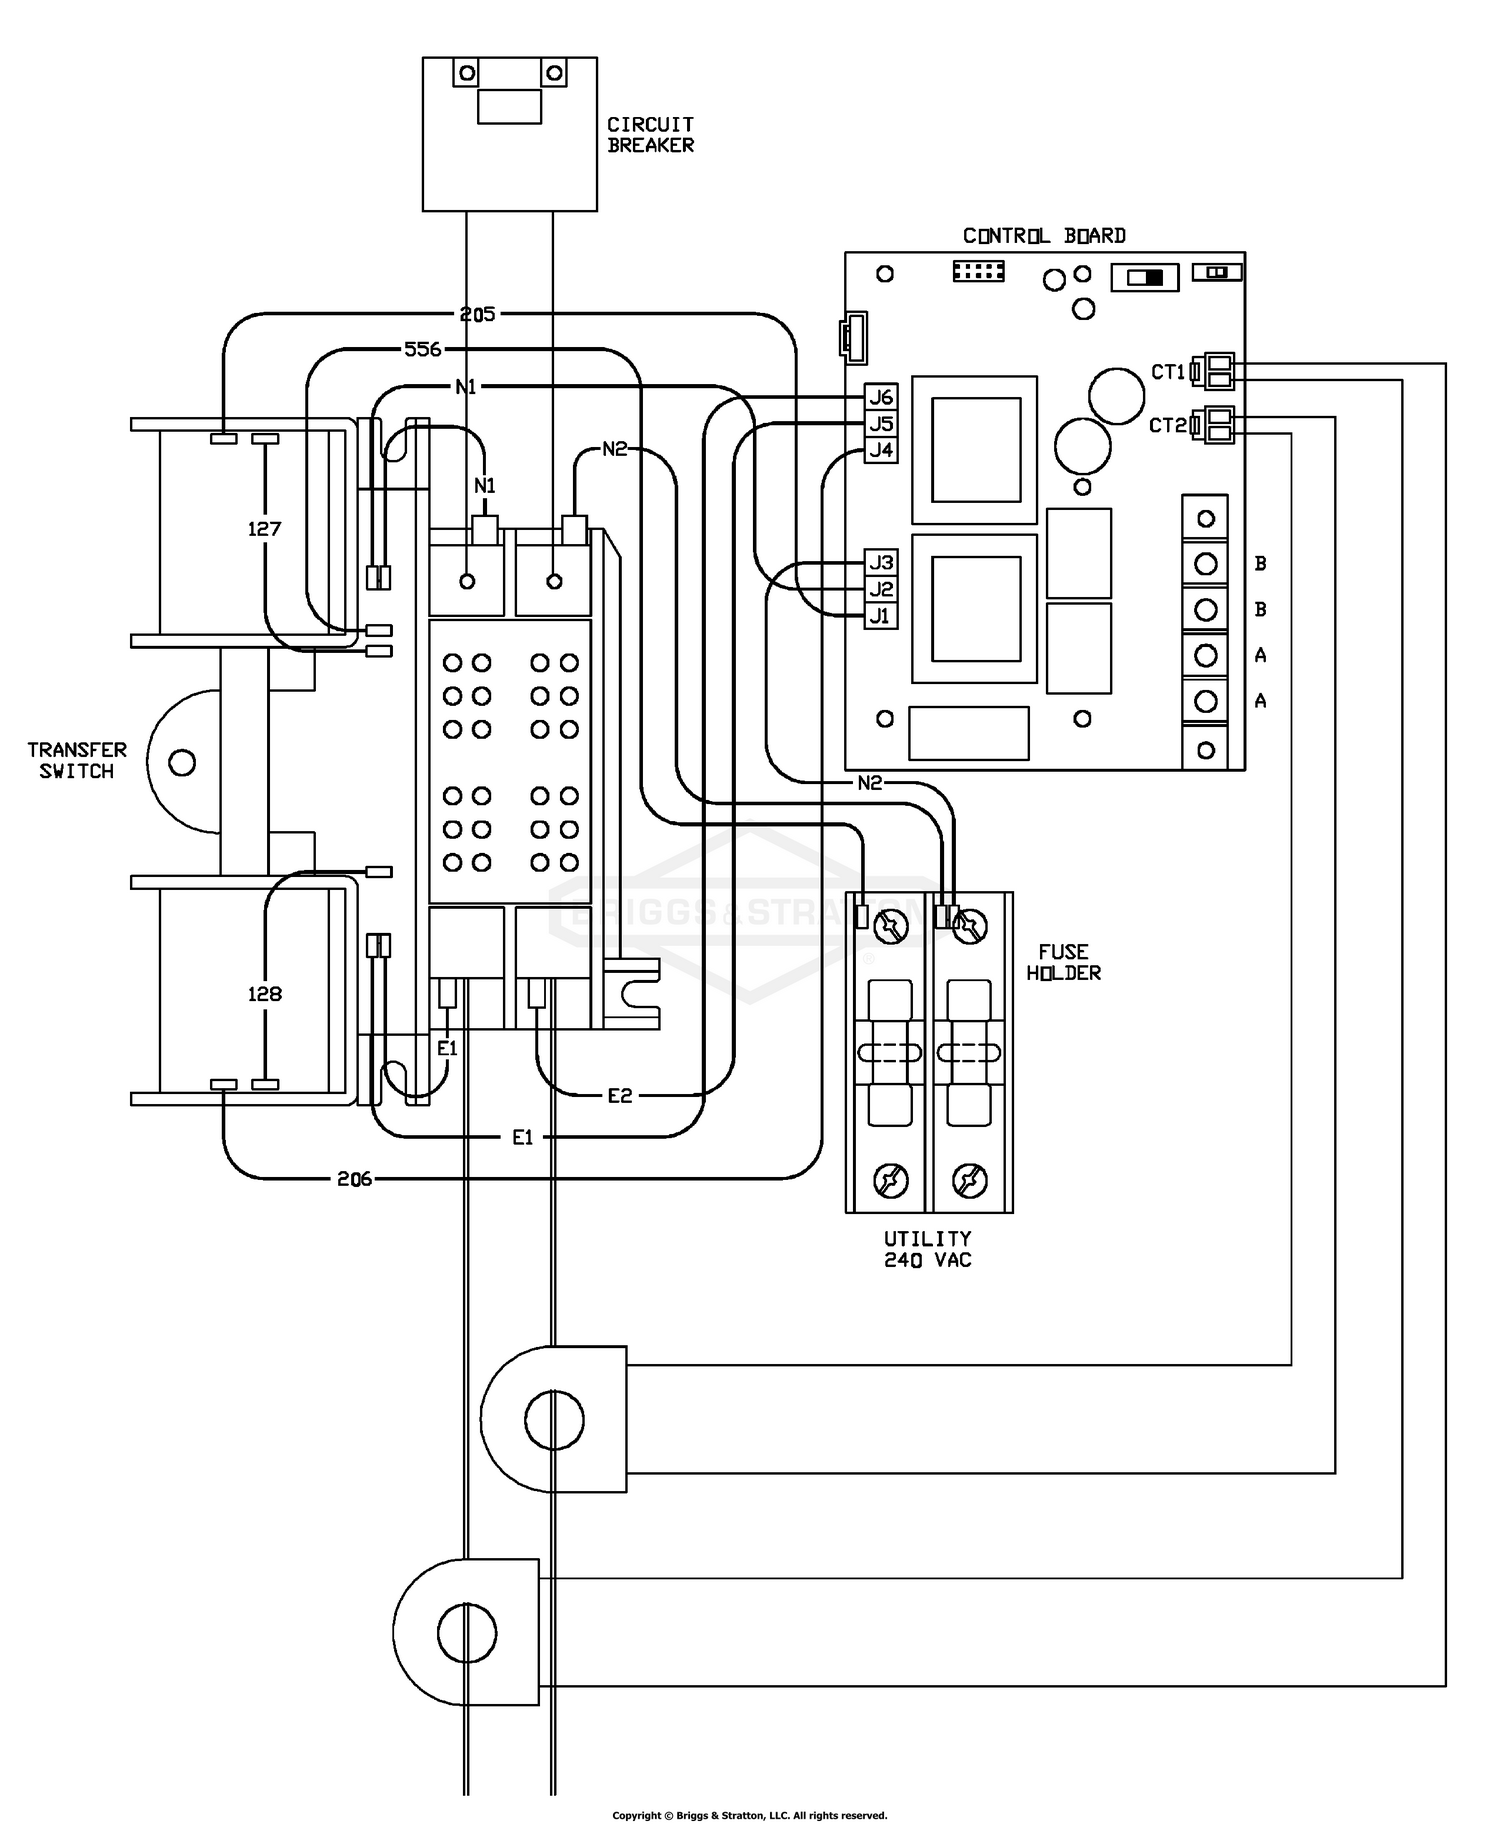 Briggs Amp Stratton Power Products Del 26072017021729 071011 1 Wiring Diagram For A Switch Transfer